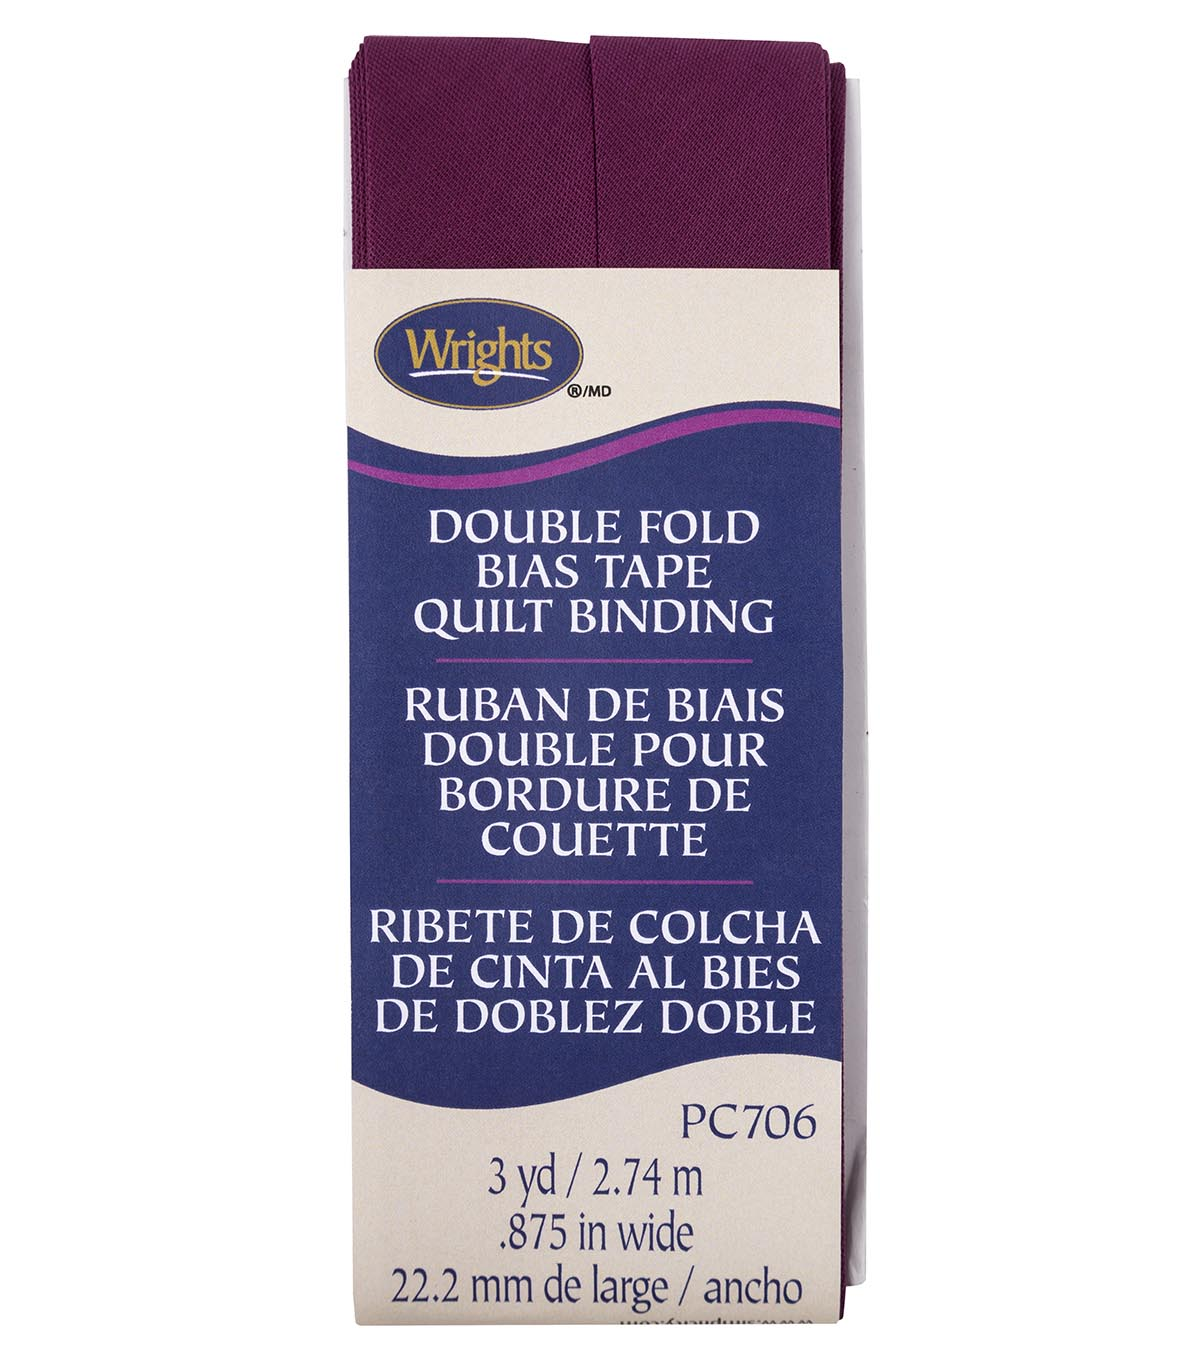 Wrights Double Fold Quilt Binding Bias Tape 7/8\u0027\u0027x3 yds-Geranium